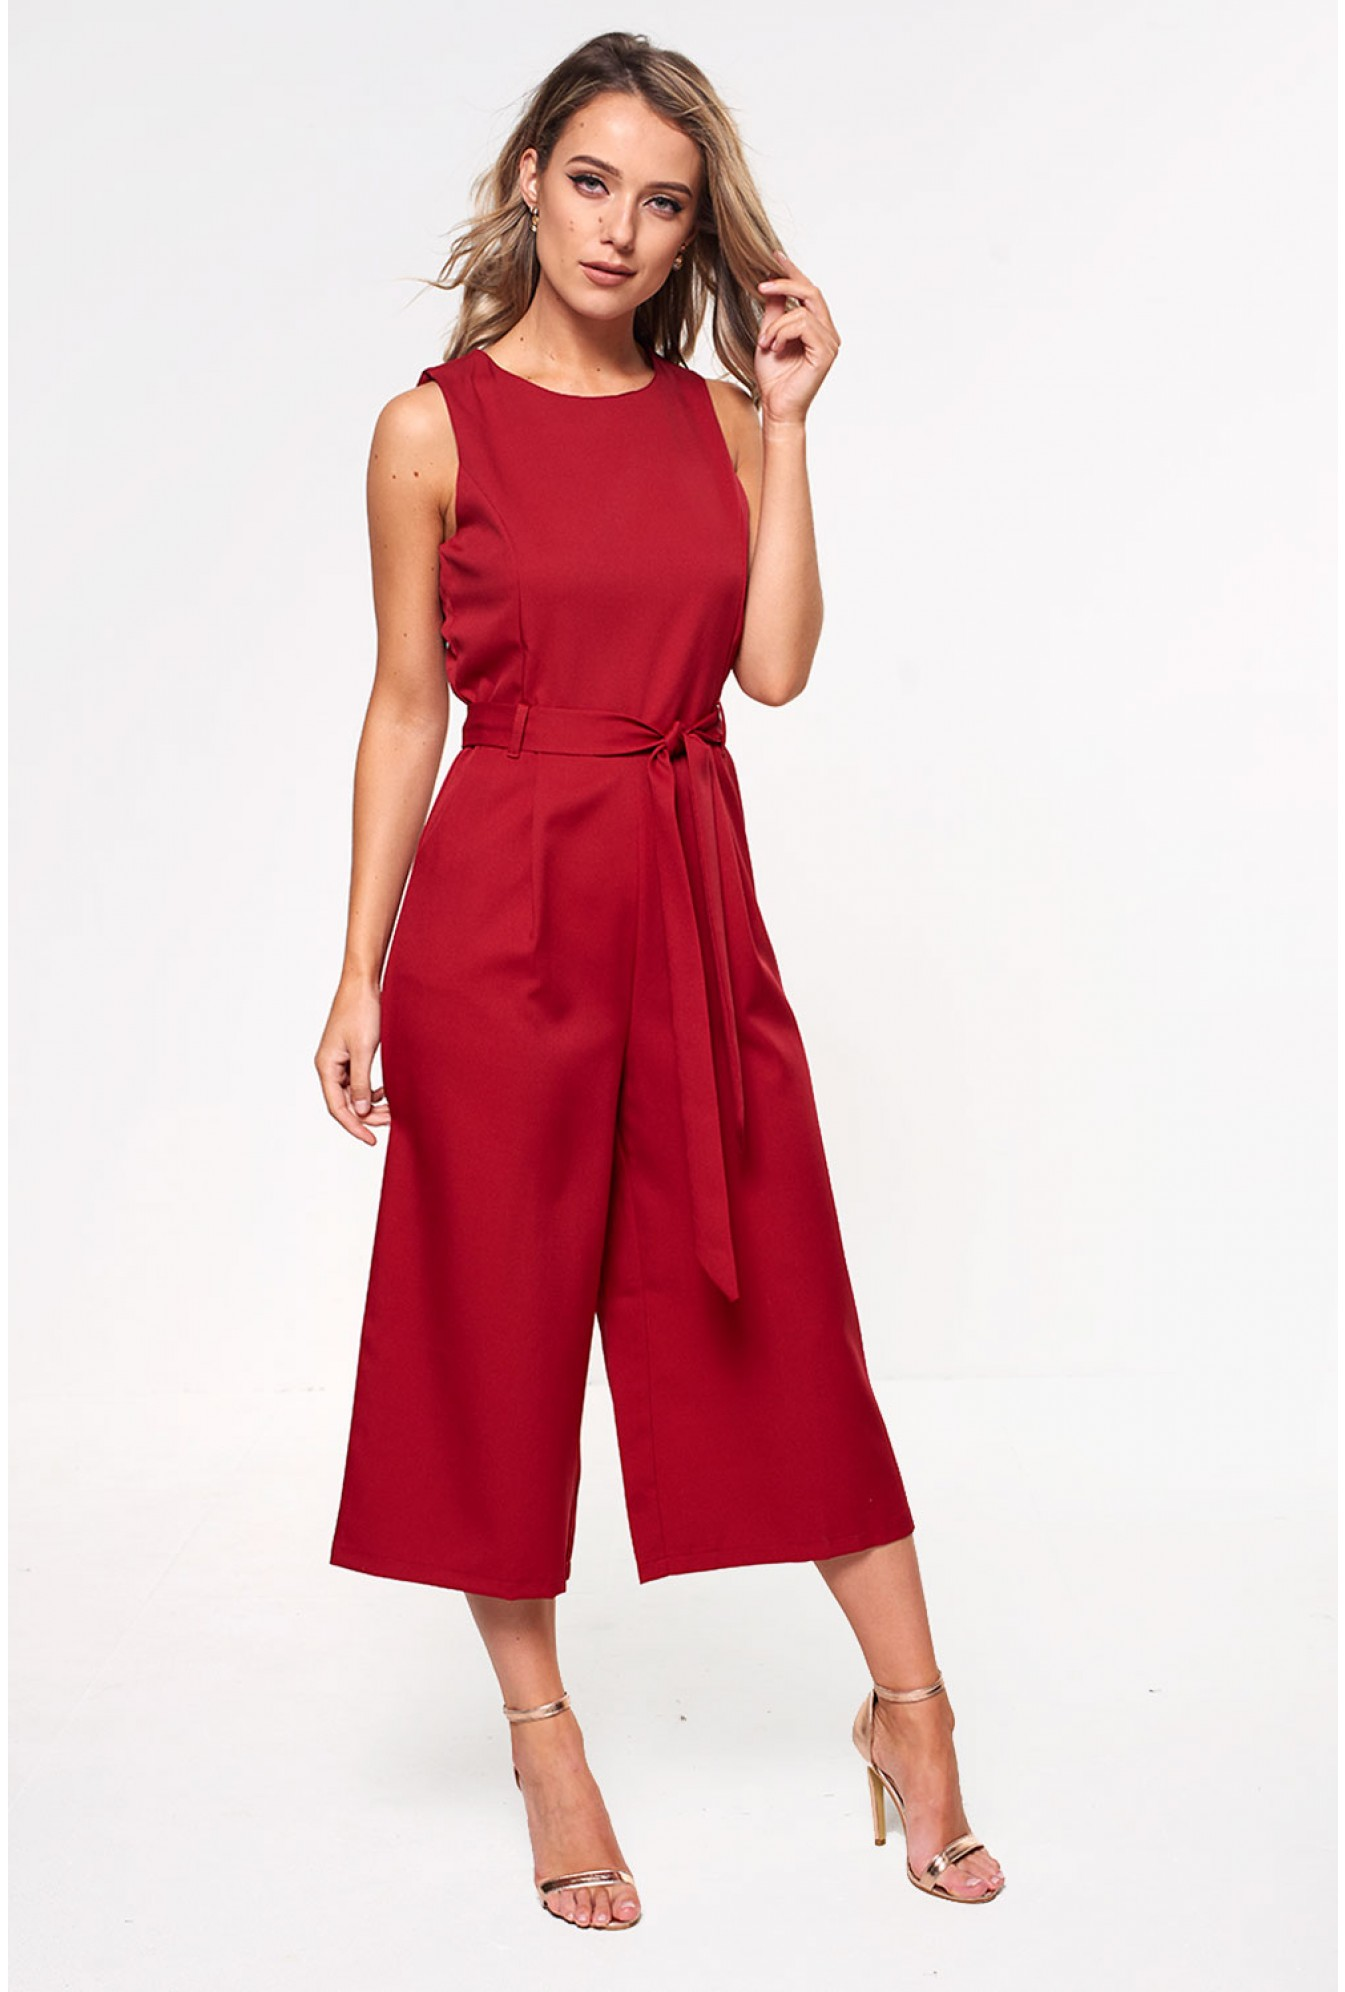 7c7e94e0058 More Views. Layla Longline Culotte Jumpsuit in Wine. Marc Angelo